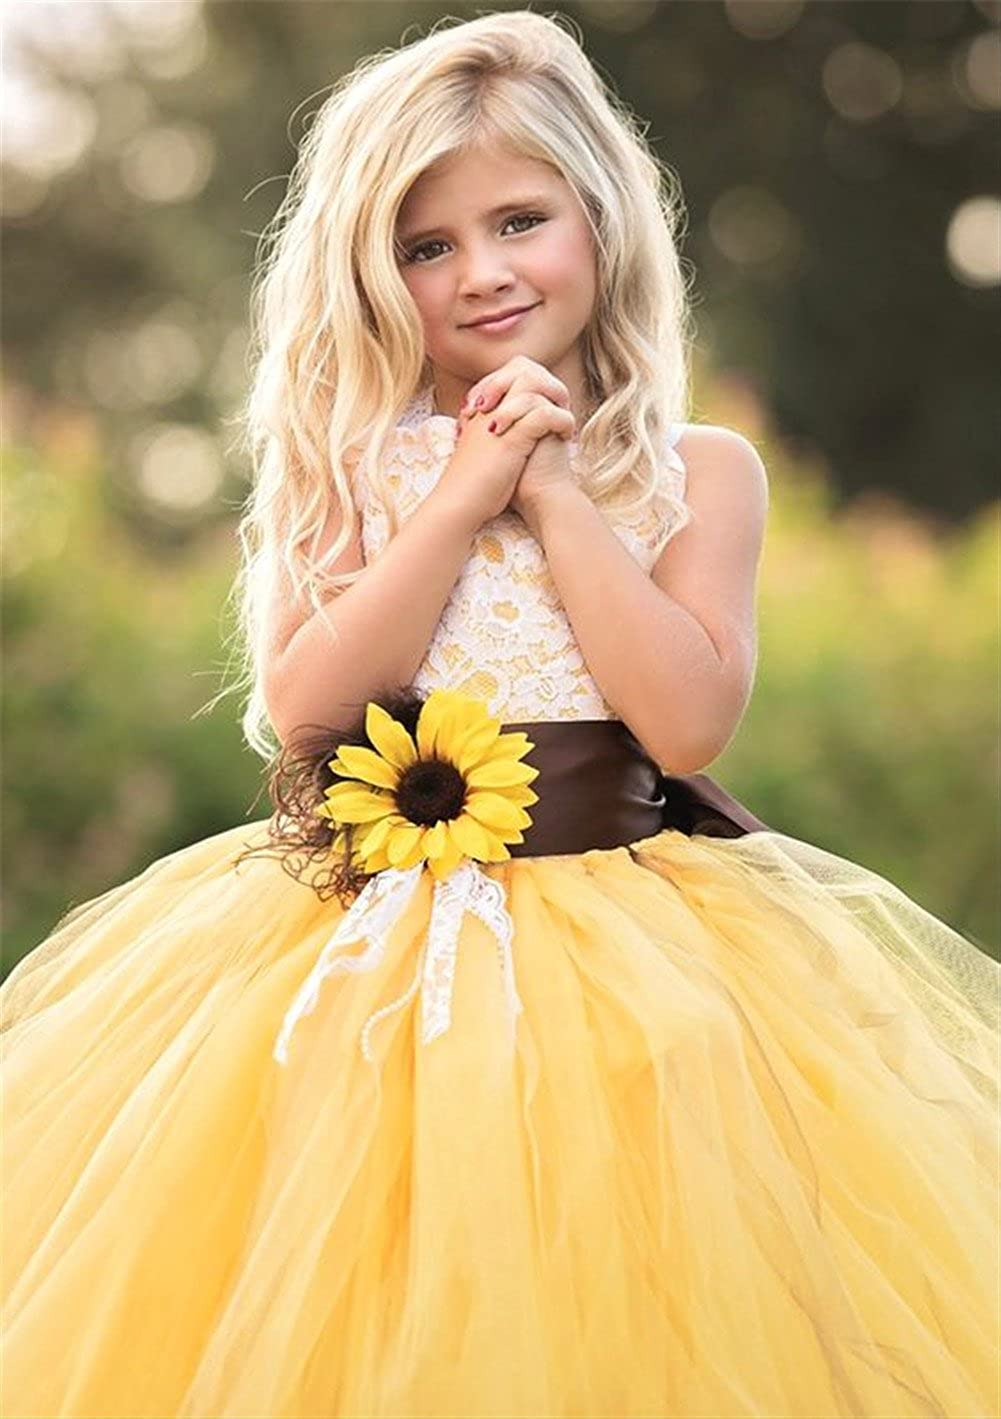 a8e30e1f6 Amazon.com: AnnaLin Yellow Tulle with Sunflower Belt Flower Girl Dress for  Wedding Party First Communion Dress for Girls: Clothing